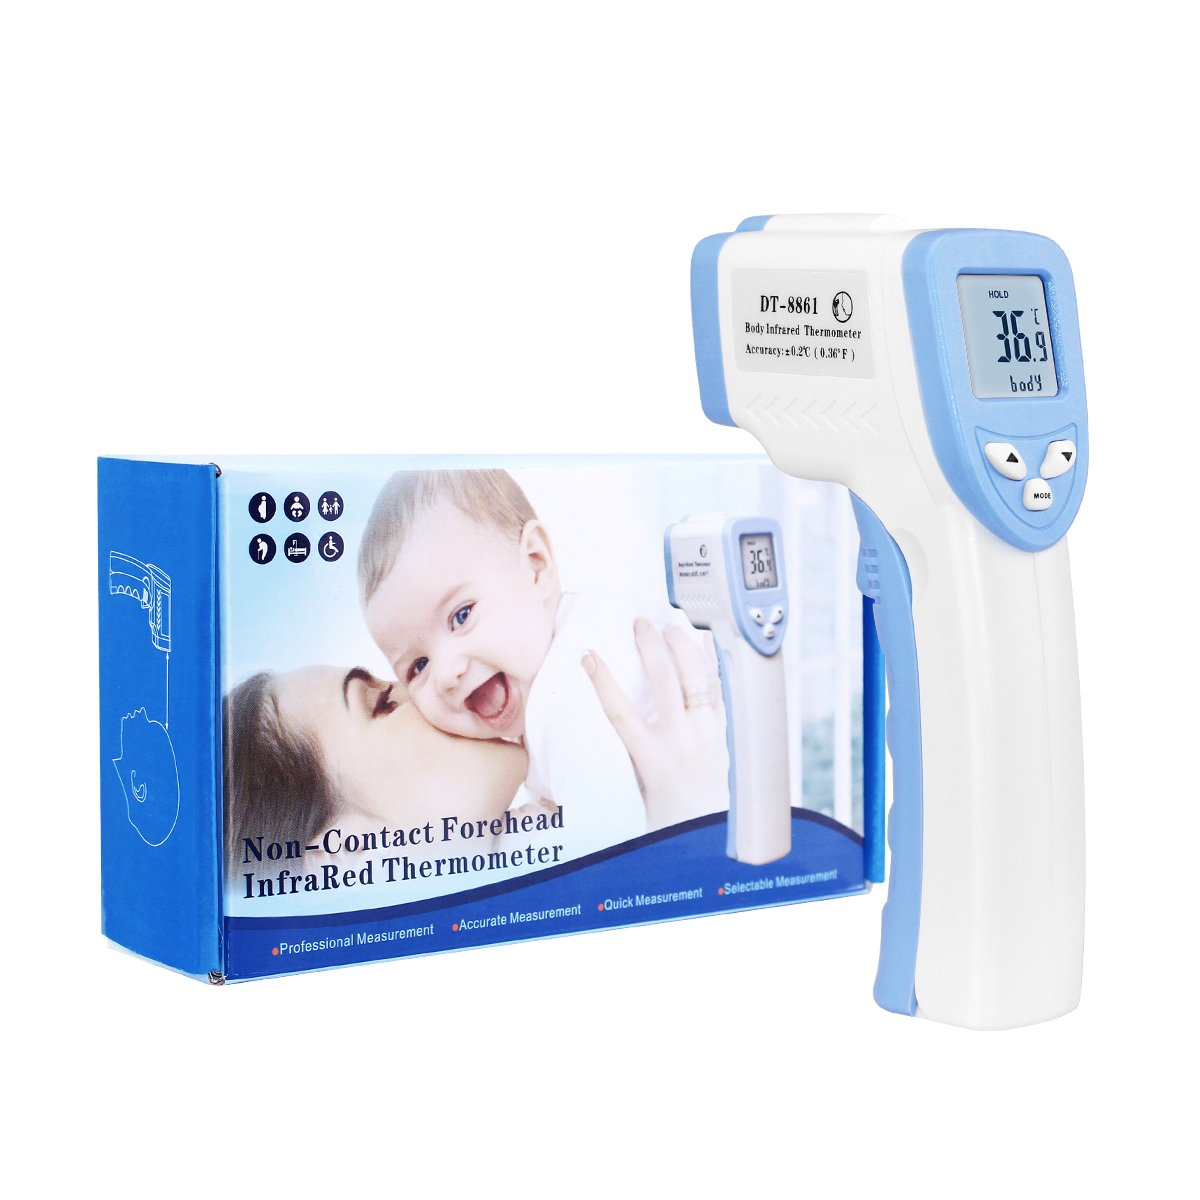 Infrared Baby Thermometer Household High Precision Medical Infrared Human Body Thermometer Precision Baby Electronic Thermometer Professional Design Thermometers